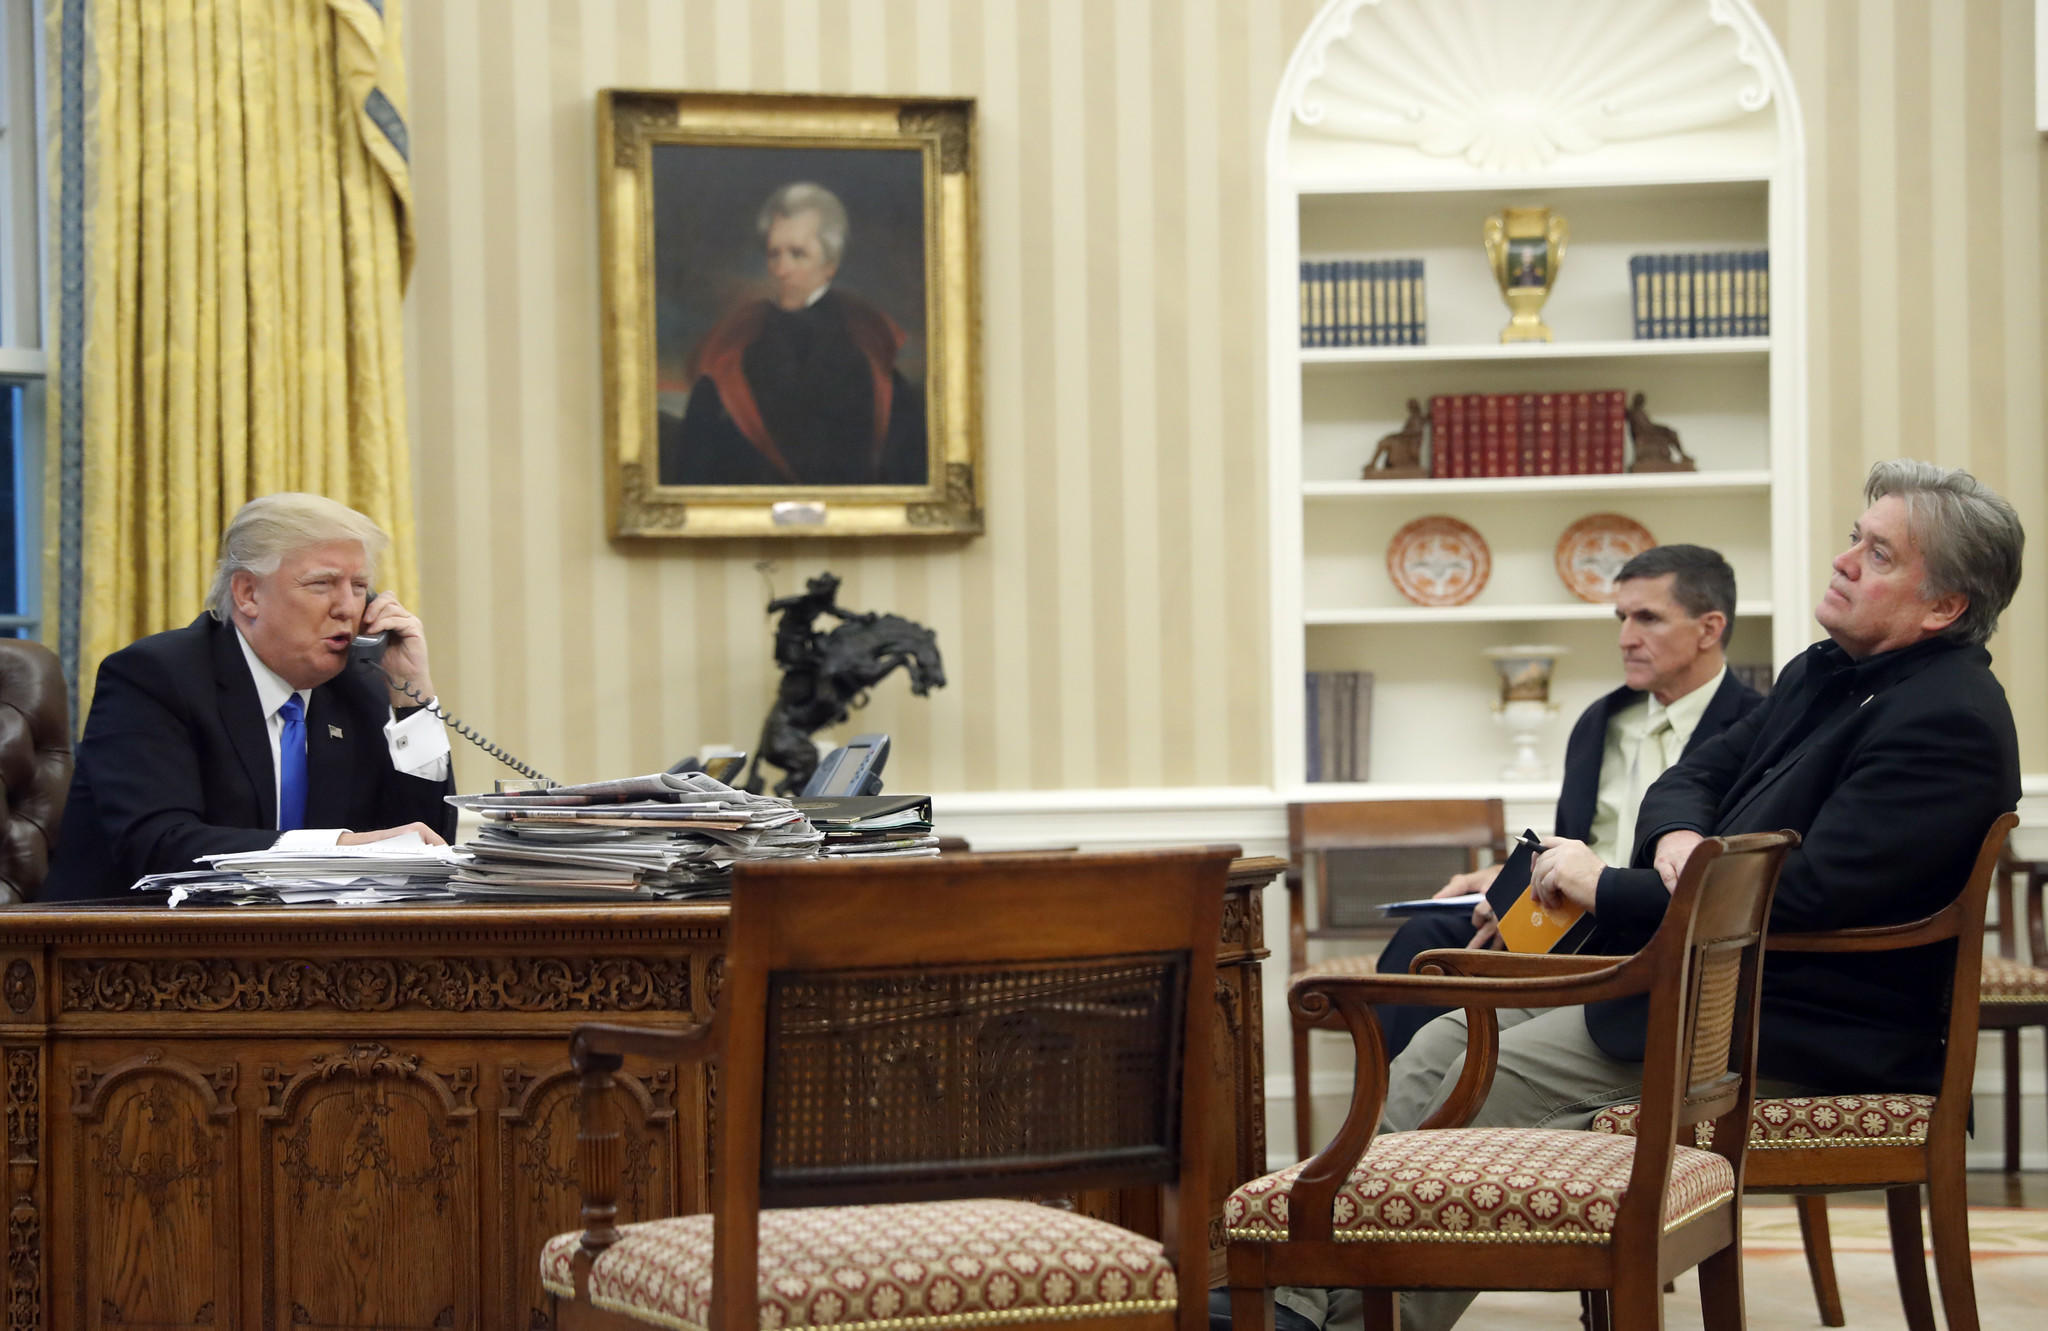 President Trump with chief strategist Steve Bannon, right, and National Security Adviser Michael Flynn, center, in the Oval Office. (Alex Brandon / Associated Pres)